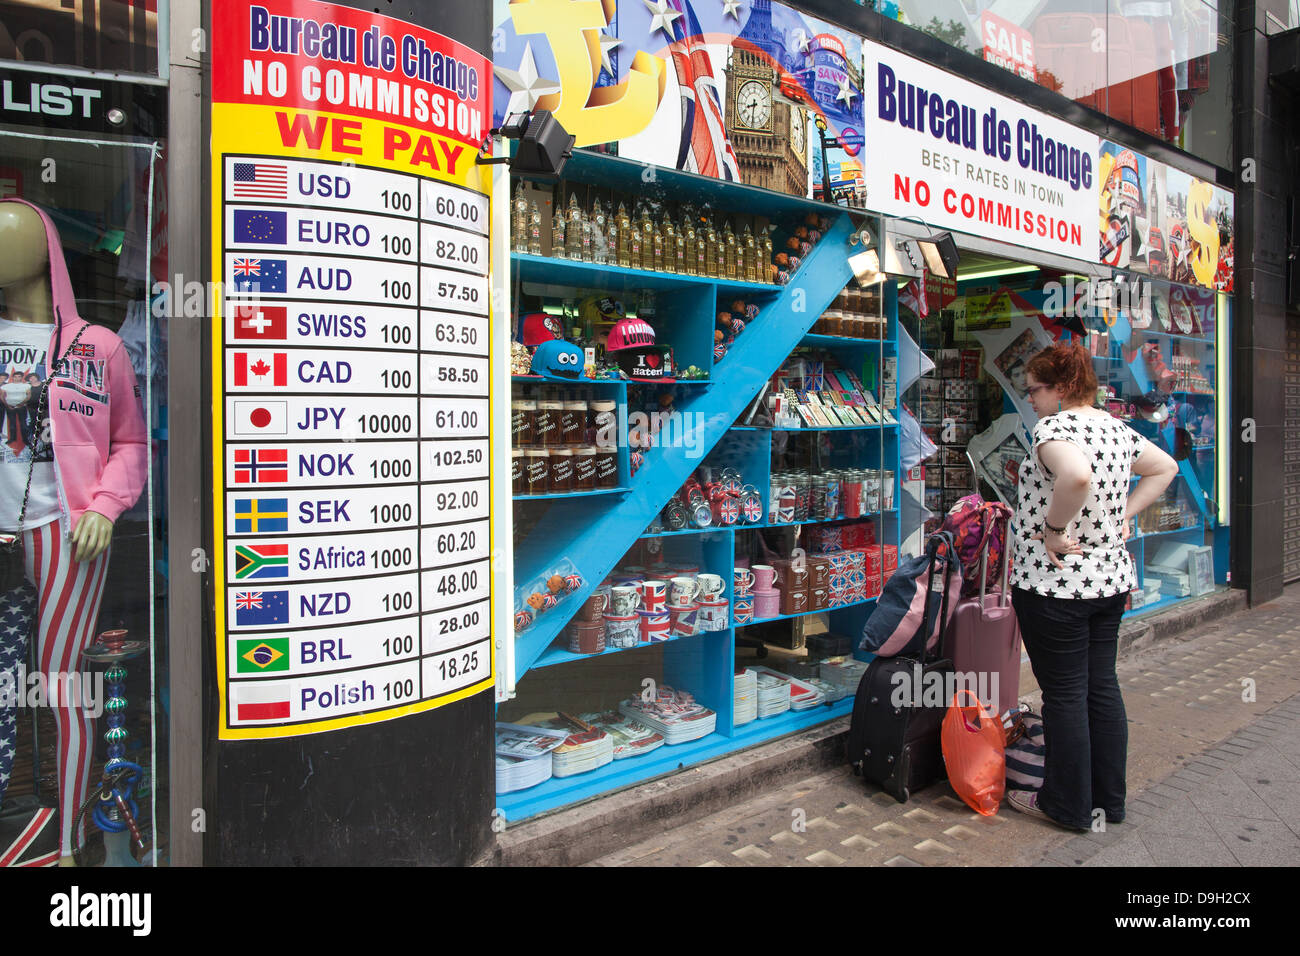 Bureau de Change, Leicester Square, West End, London, UJK - Stock Image